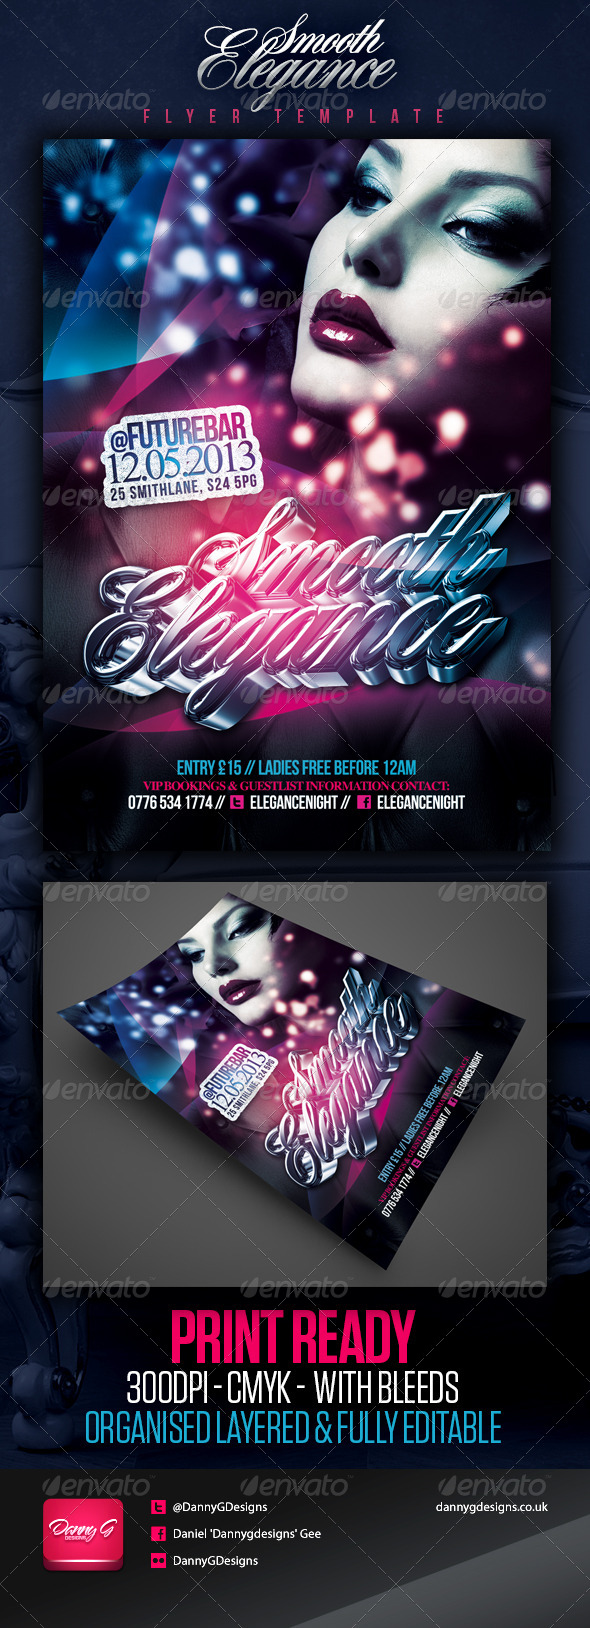 Smooth Elegance Flyer Template - Clubs & Parties Events